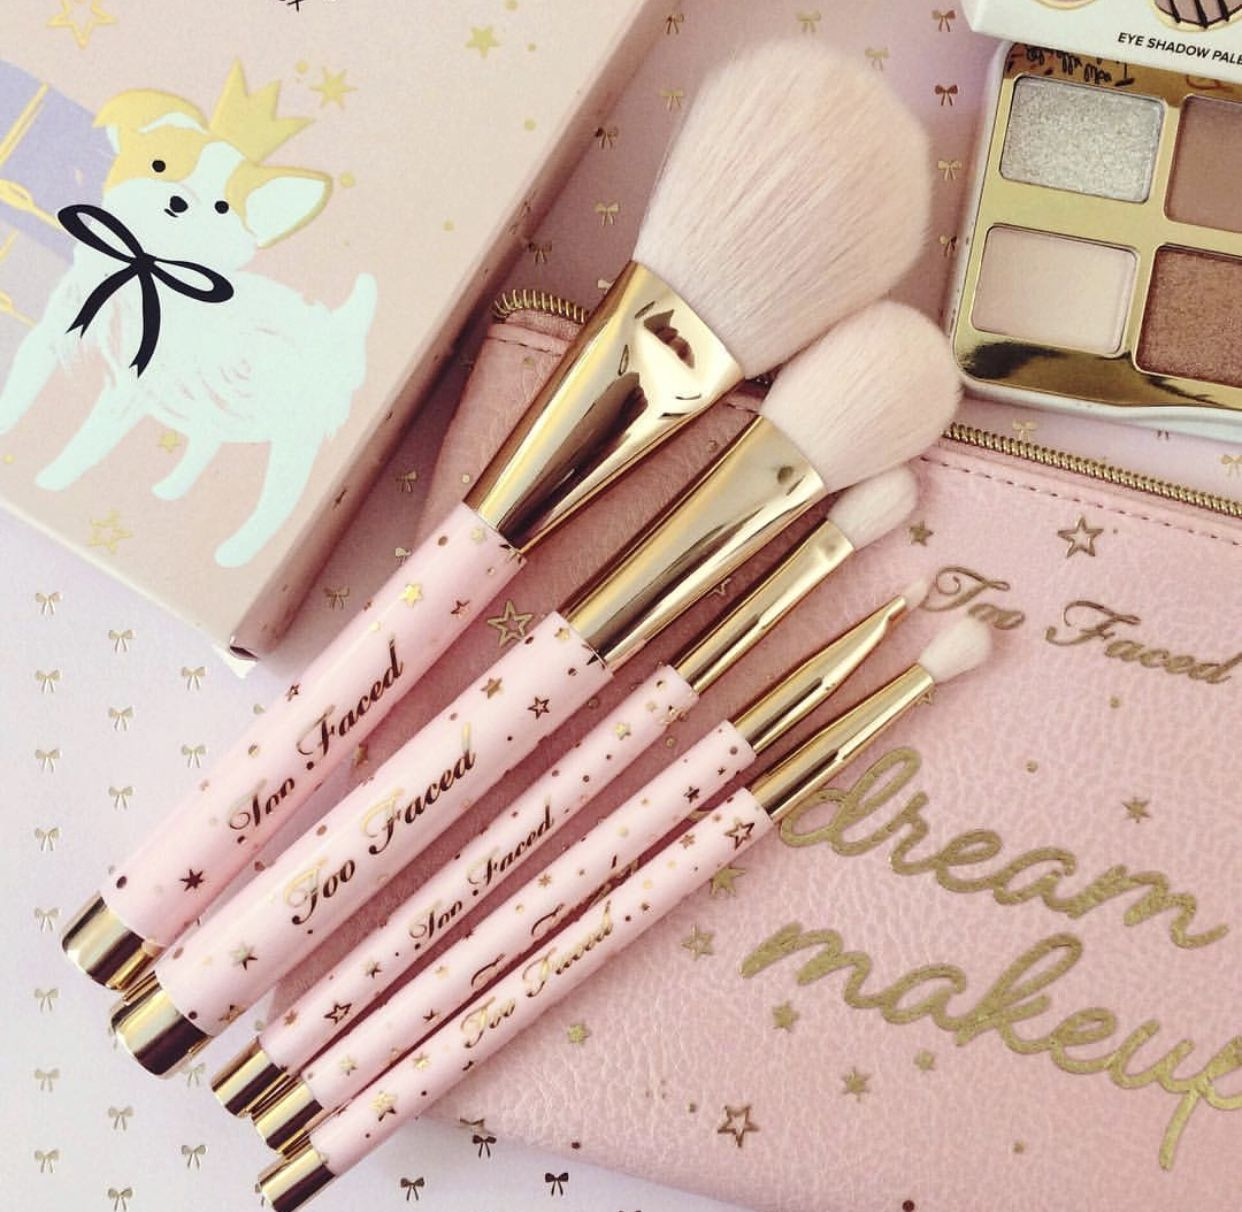 Homepage Cruelty free brushes, Essential makeup brushes